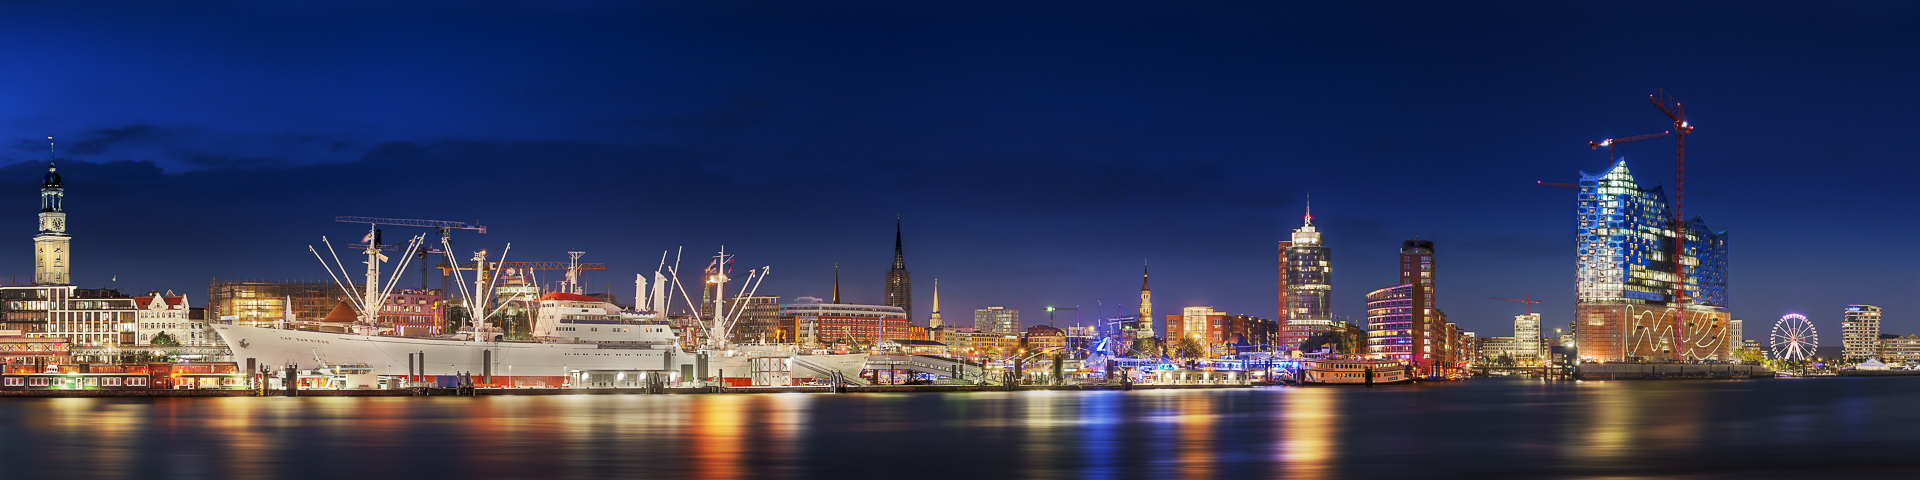 hamburg skyline foto bild deutschland europe hamburg bilder auf fotocommunity. Black Bedroom Furniture Sets. Home Design Ideas